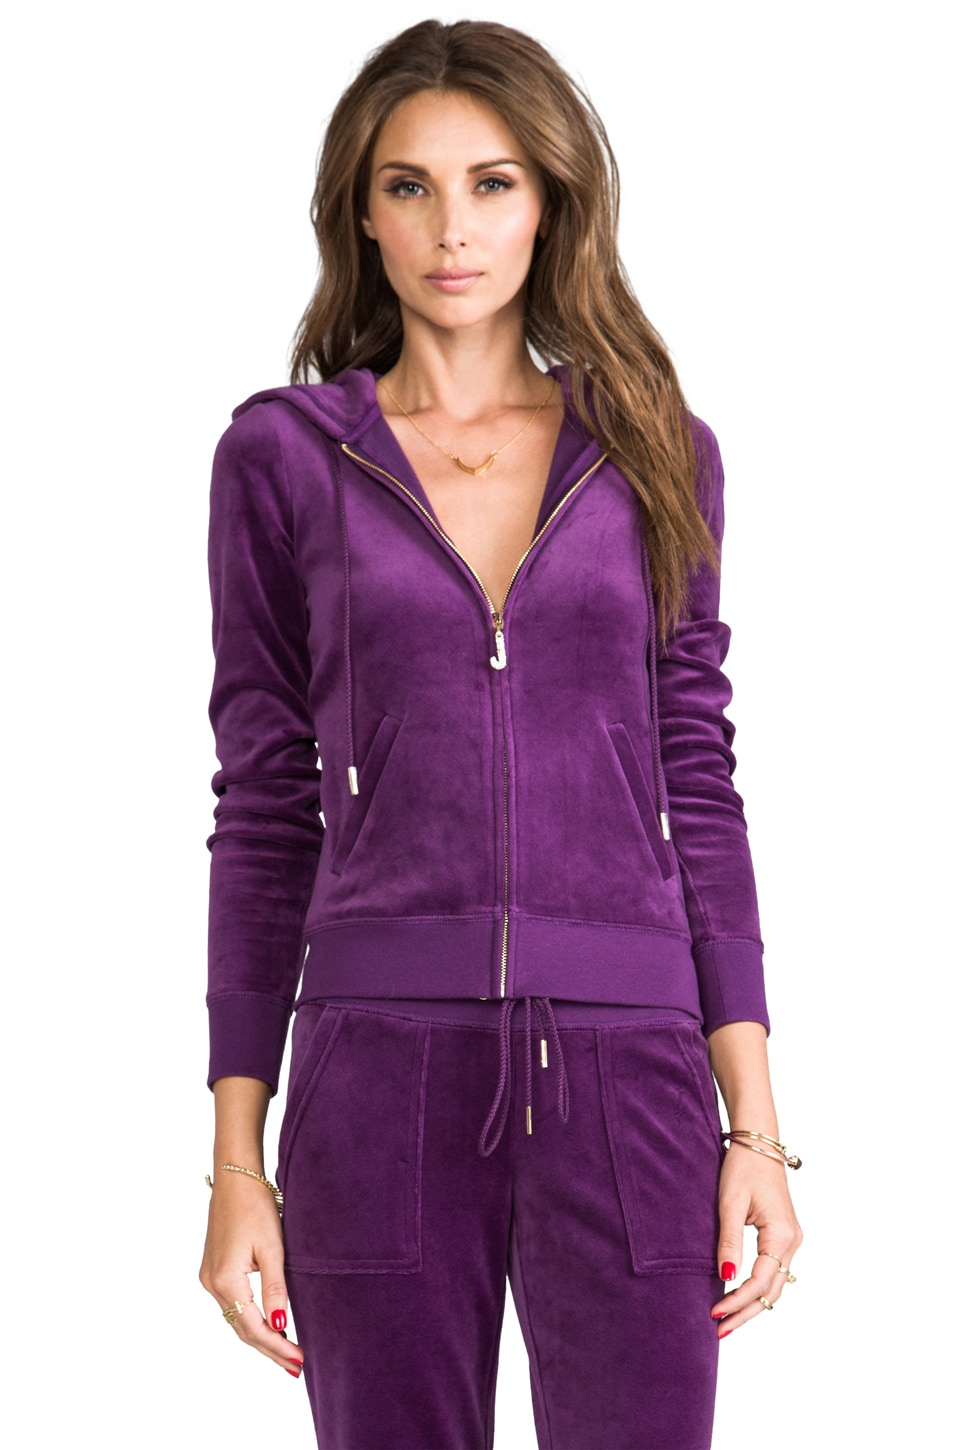 Juicy Couture J Bling Hoodie in Jeweled Plum